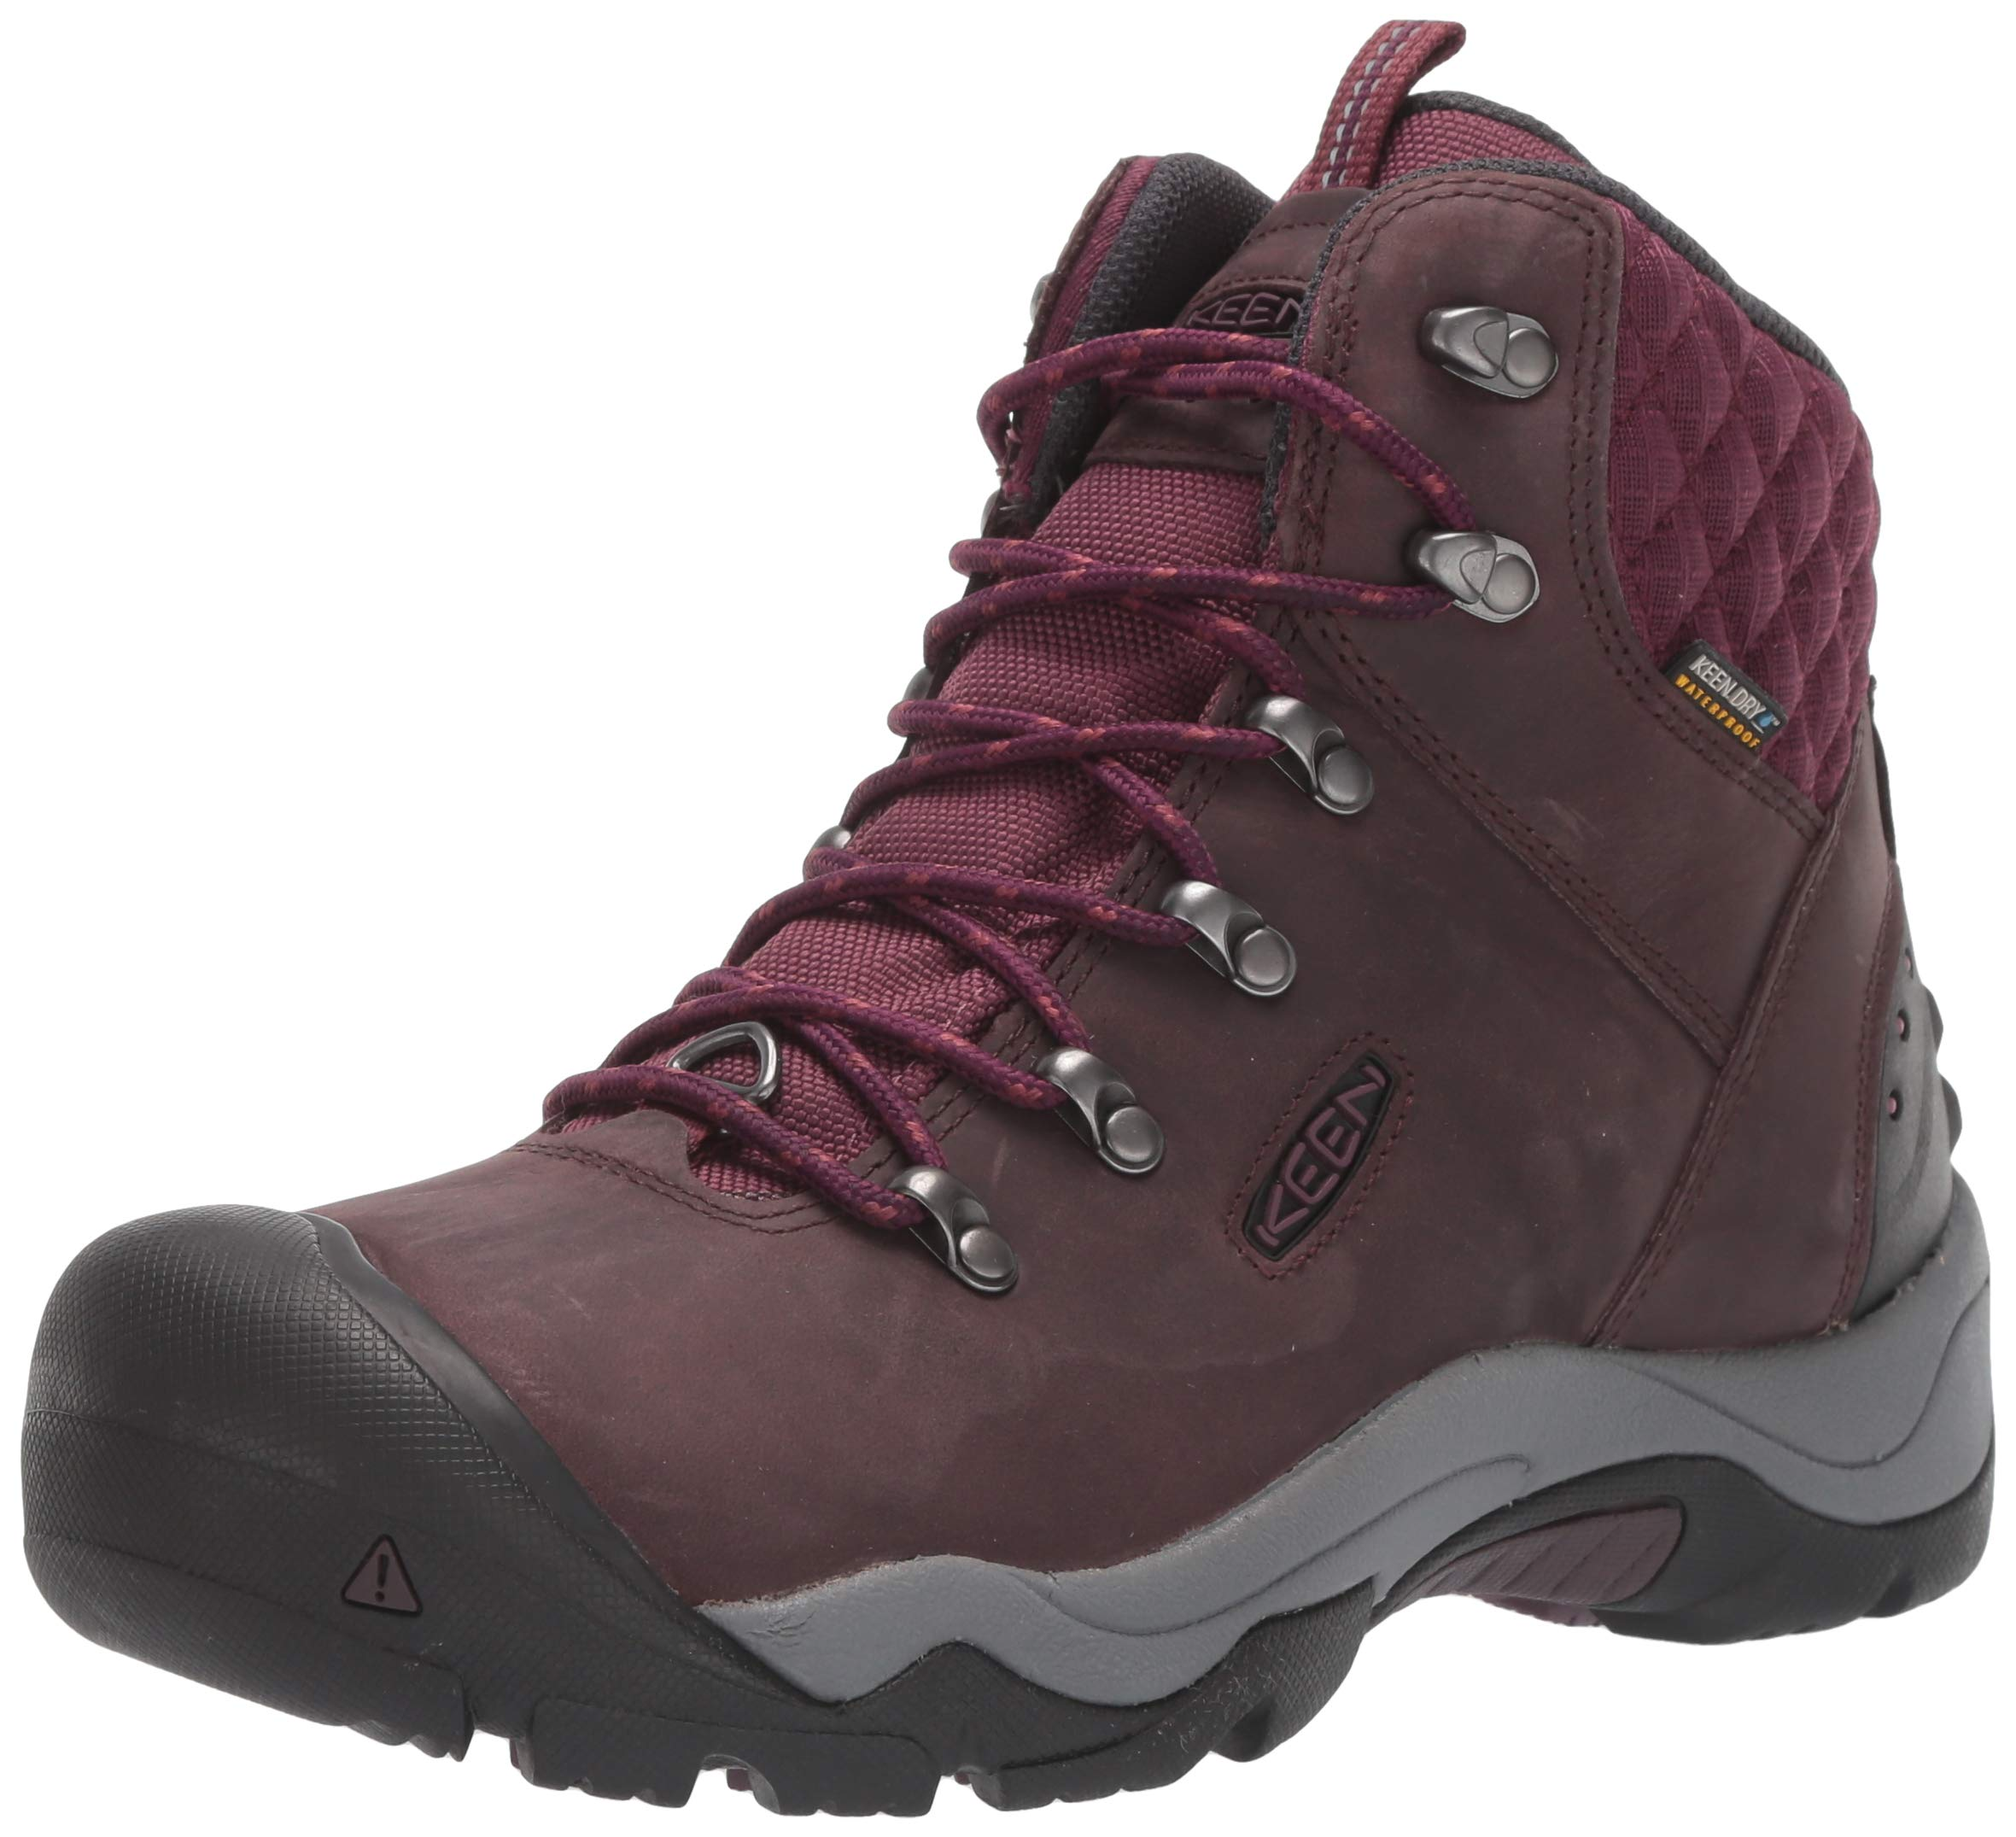 KEEN Women's Revel III Boot, Peppercorn/Eggplant, 7 M US by KEEN